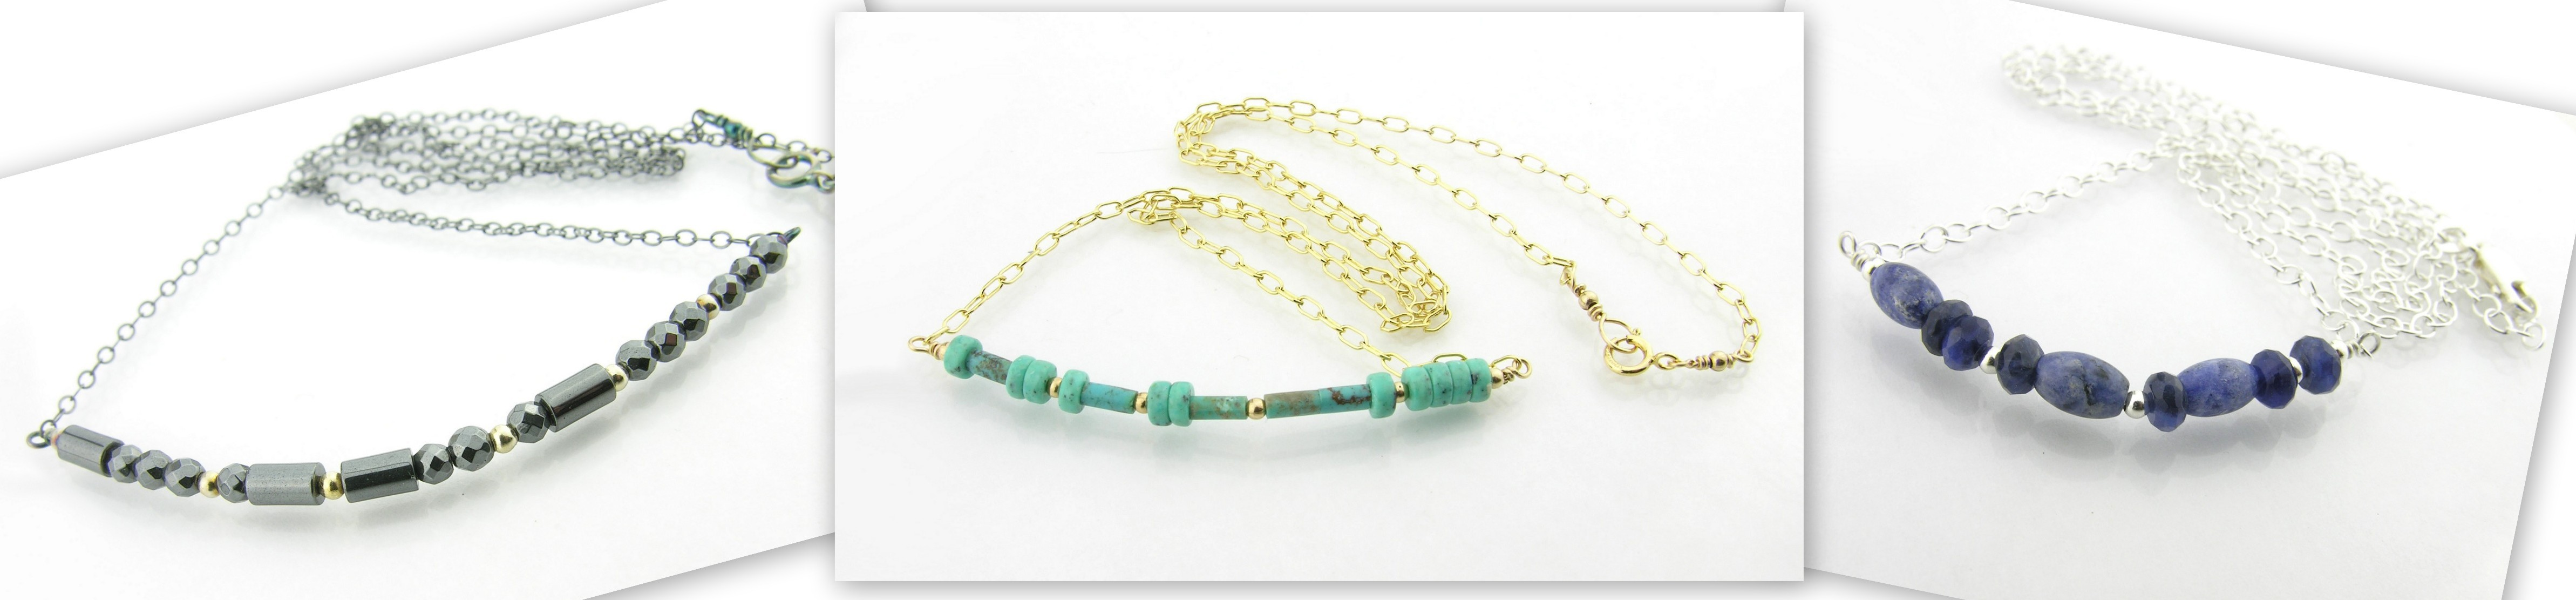 Morse code necklaces in hematite, turquoise, sodalite in both sterling silver and gold filled